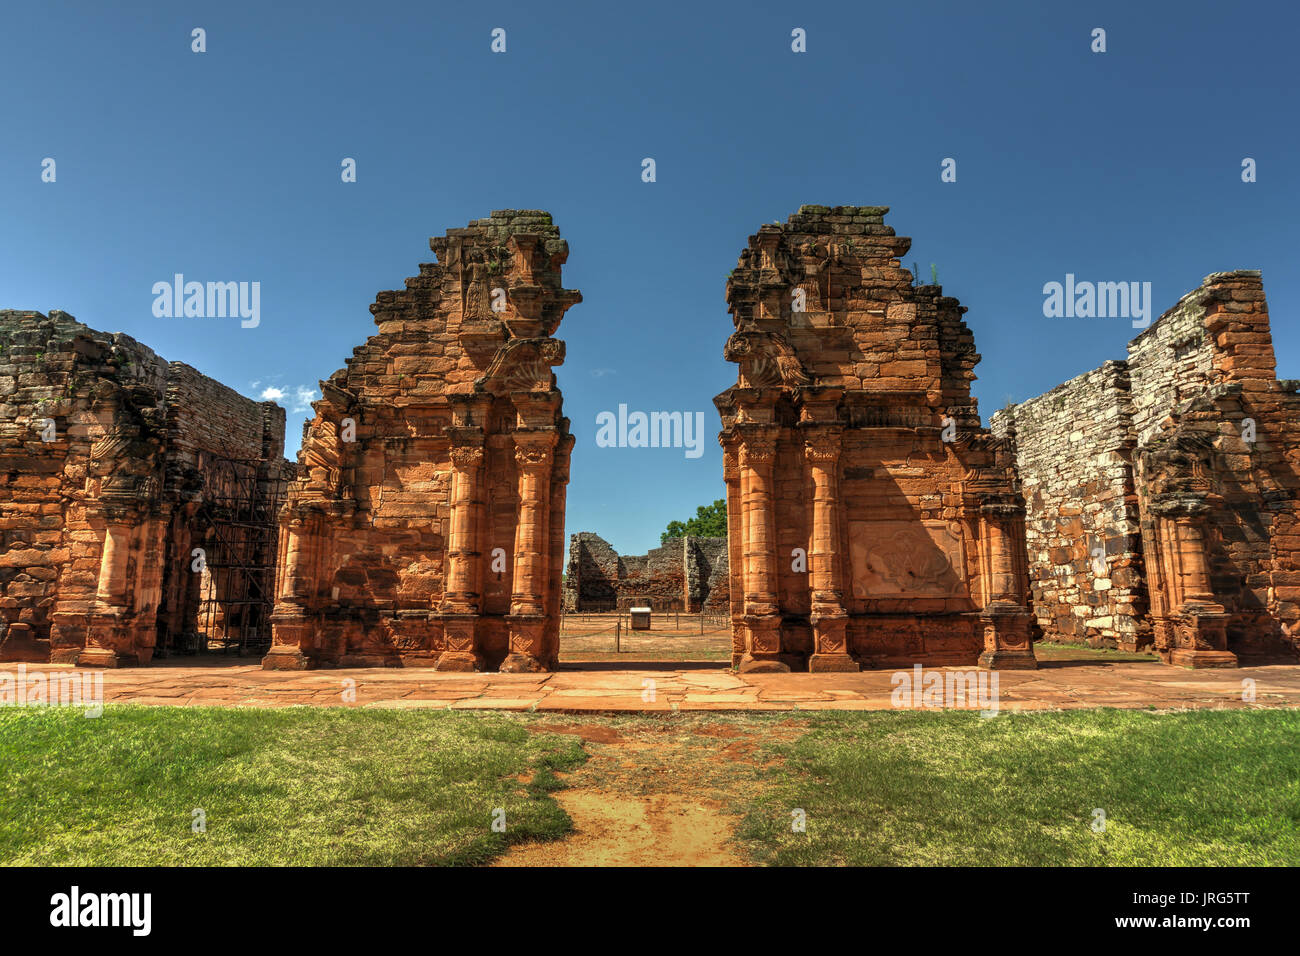 Ruins of San Ignacio Mini, UNESCO World heritage site, Argentina - Stock Image